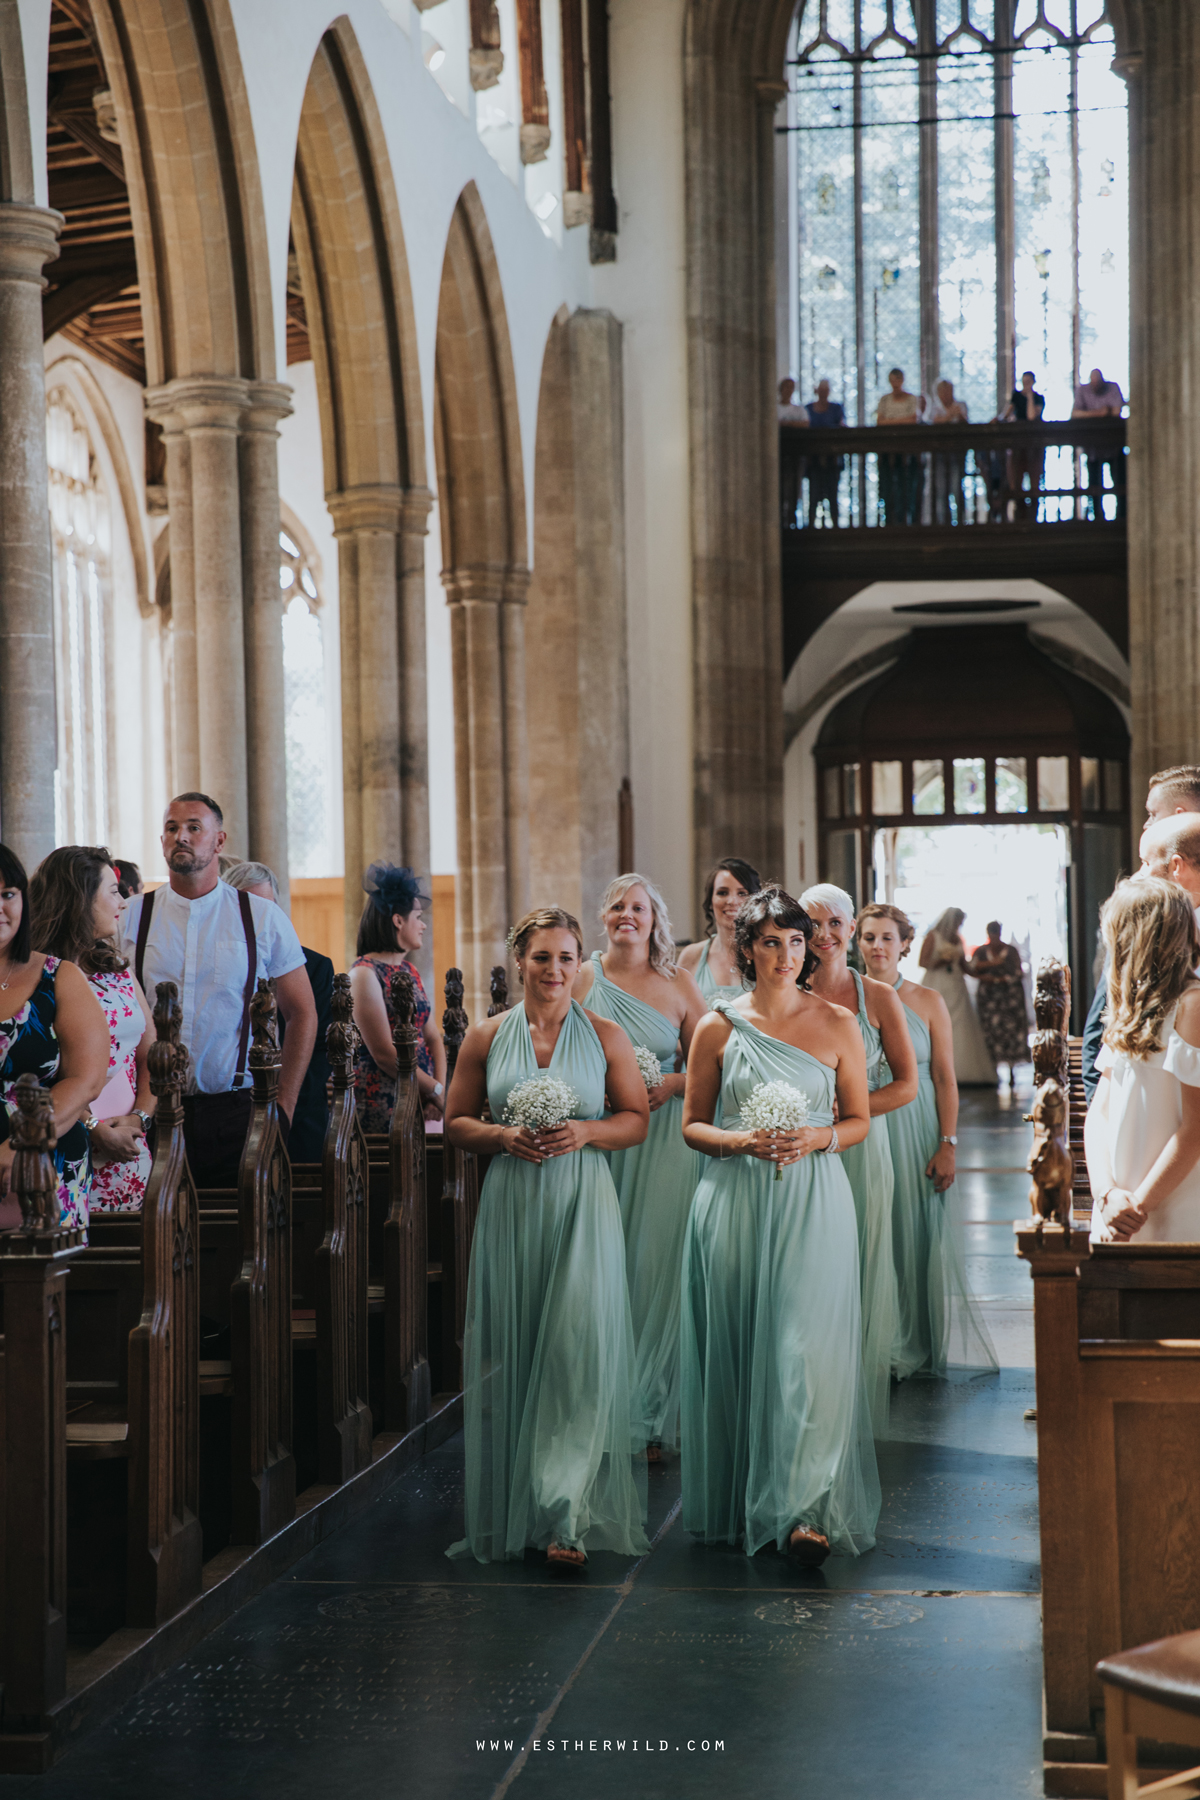 Swaffham_Wedding_Castle_Acre_Norfolk_Esther_Wild_Photographer_Wedding_Photography_3R8A0601.jpg